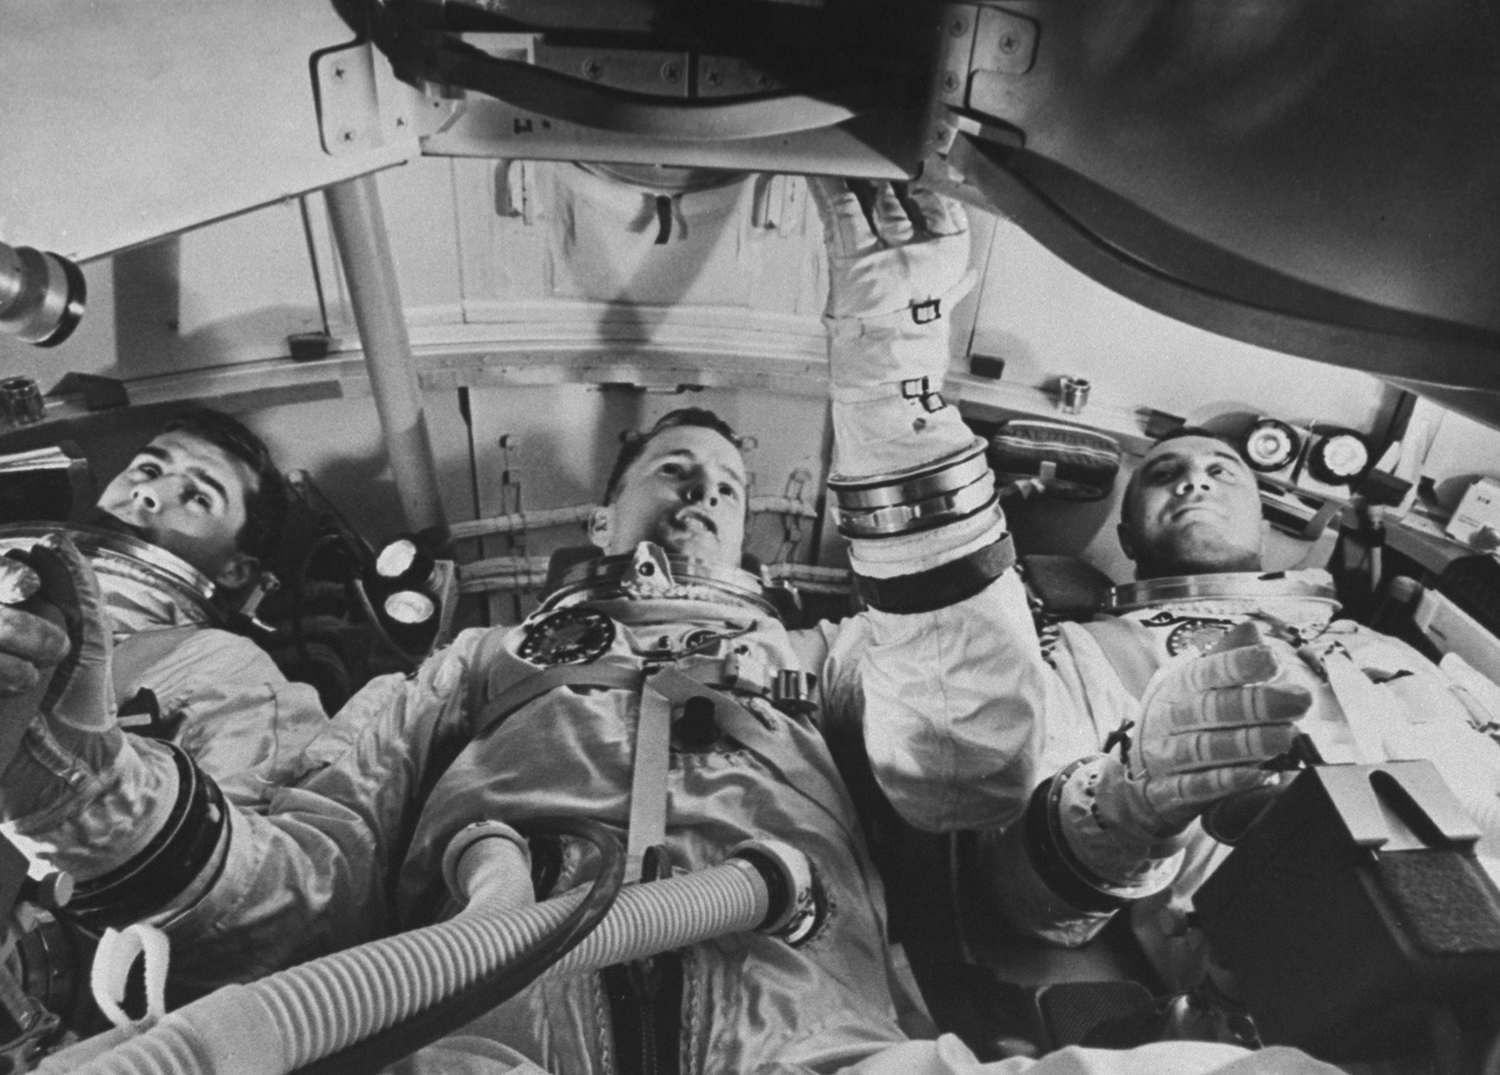 Apollo 1 astronauts Roger Chaffee, Ed White and Gus Grissom, 1967.